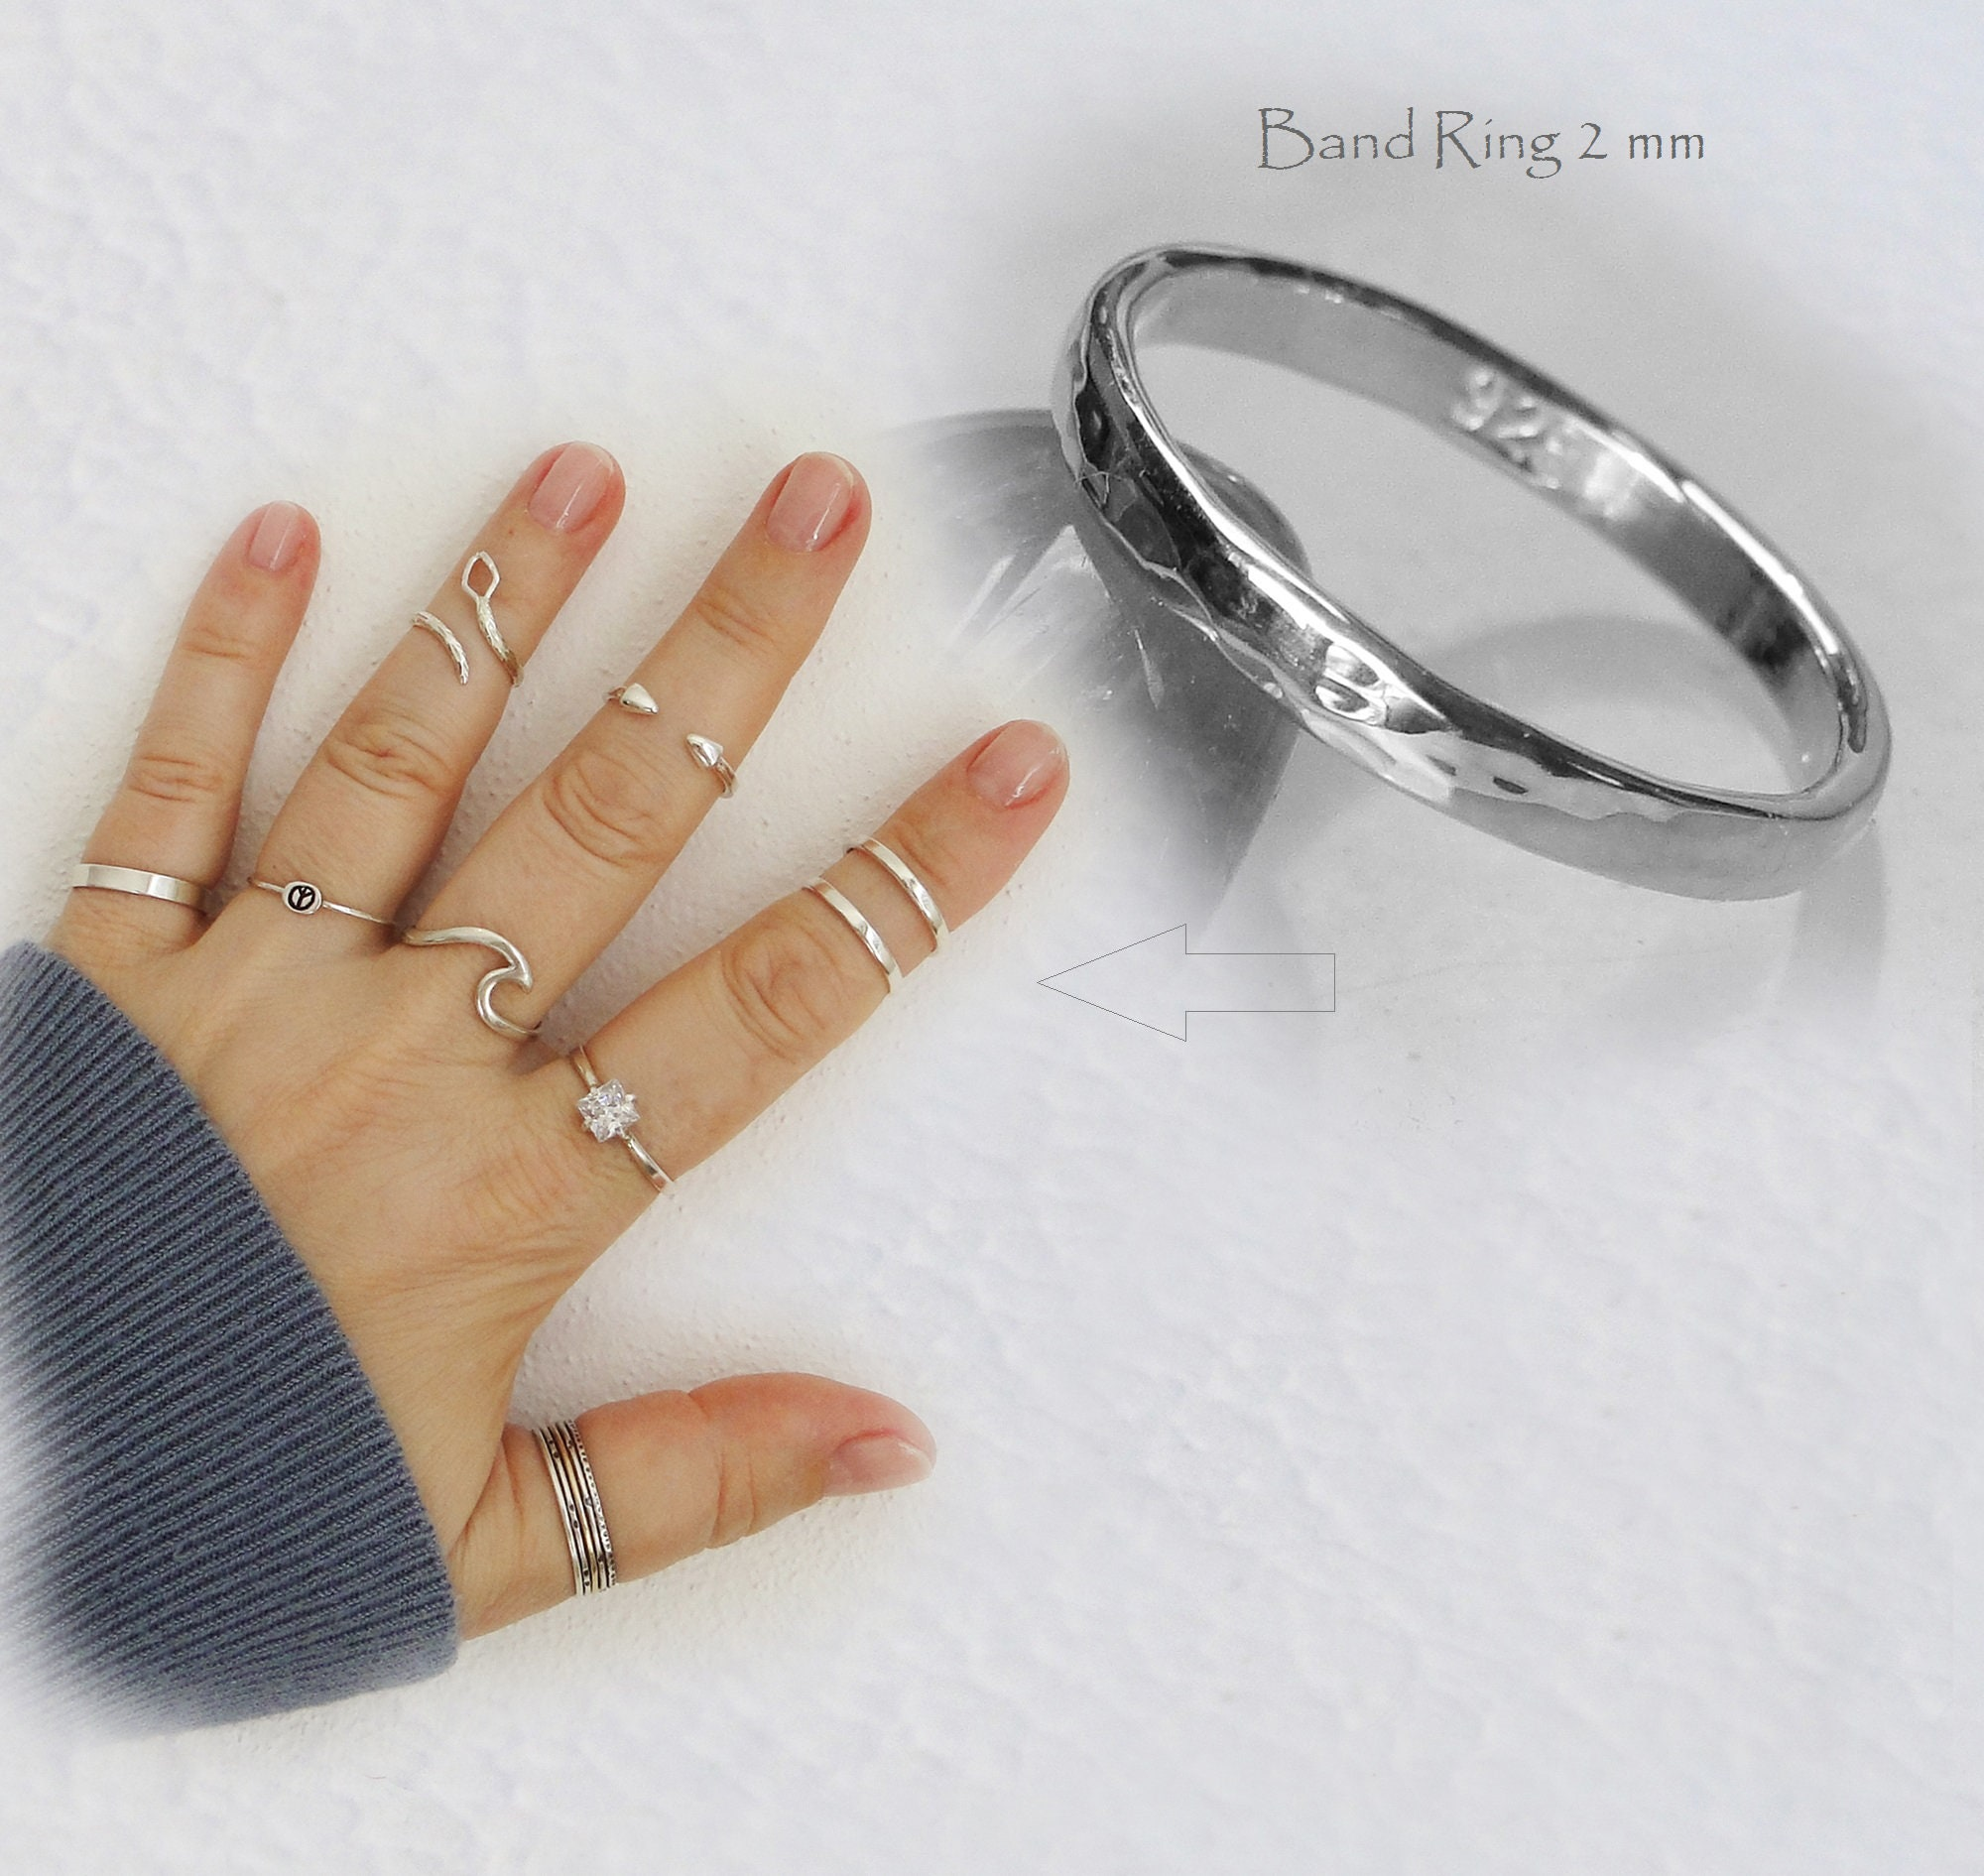 dfcef72f7da7d Band ring 2mm Stacking ring Toe Midi Above knuckle ring 925 Sterling Silver  Adjustable or Band ring Size US 0 up to US 16 Plain or Oxidized